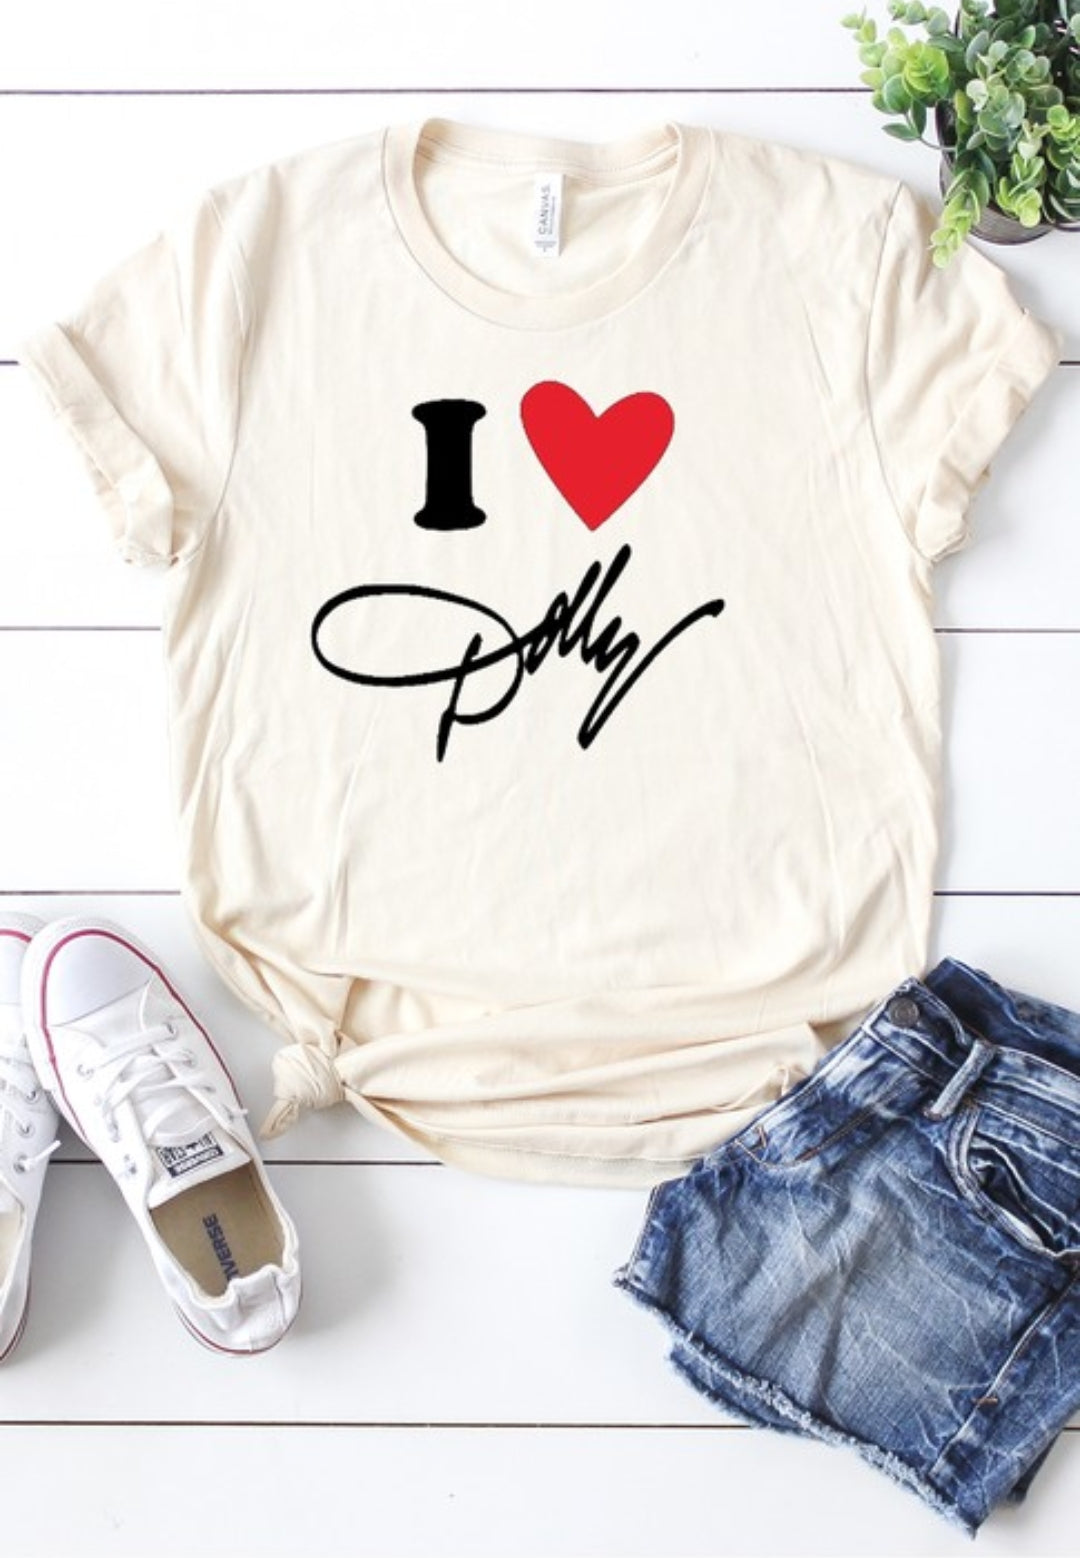 I LOVE DOLLY TEE